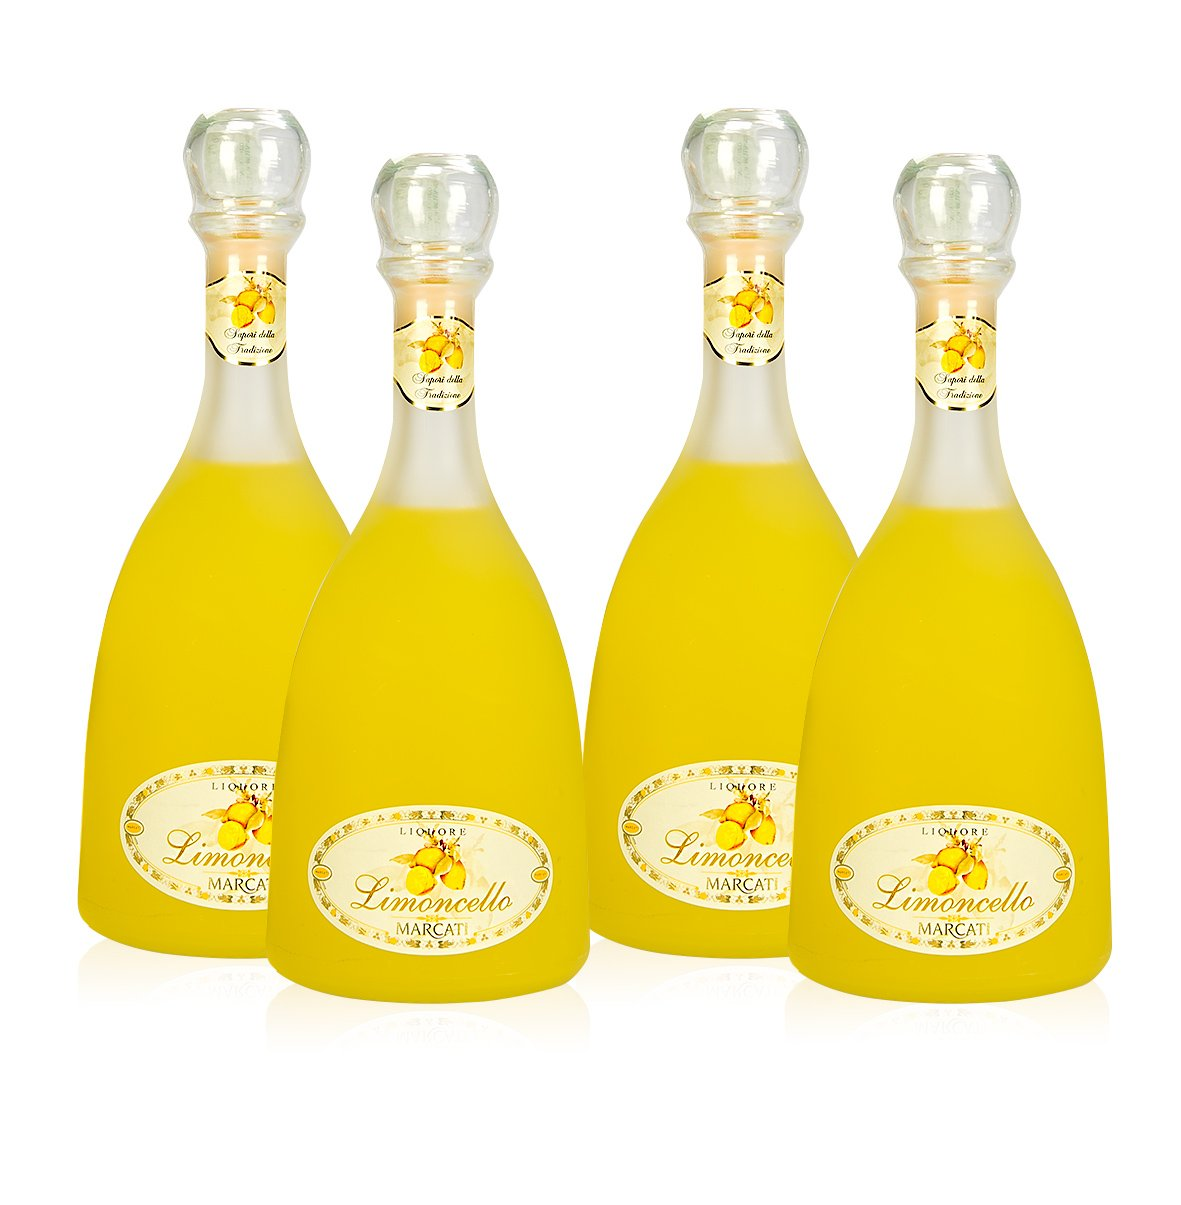 Limoncello of Sorrento Marcati Gagliano (Pack 4 Satin Finish Bottles)